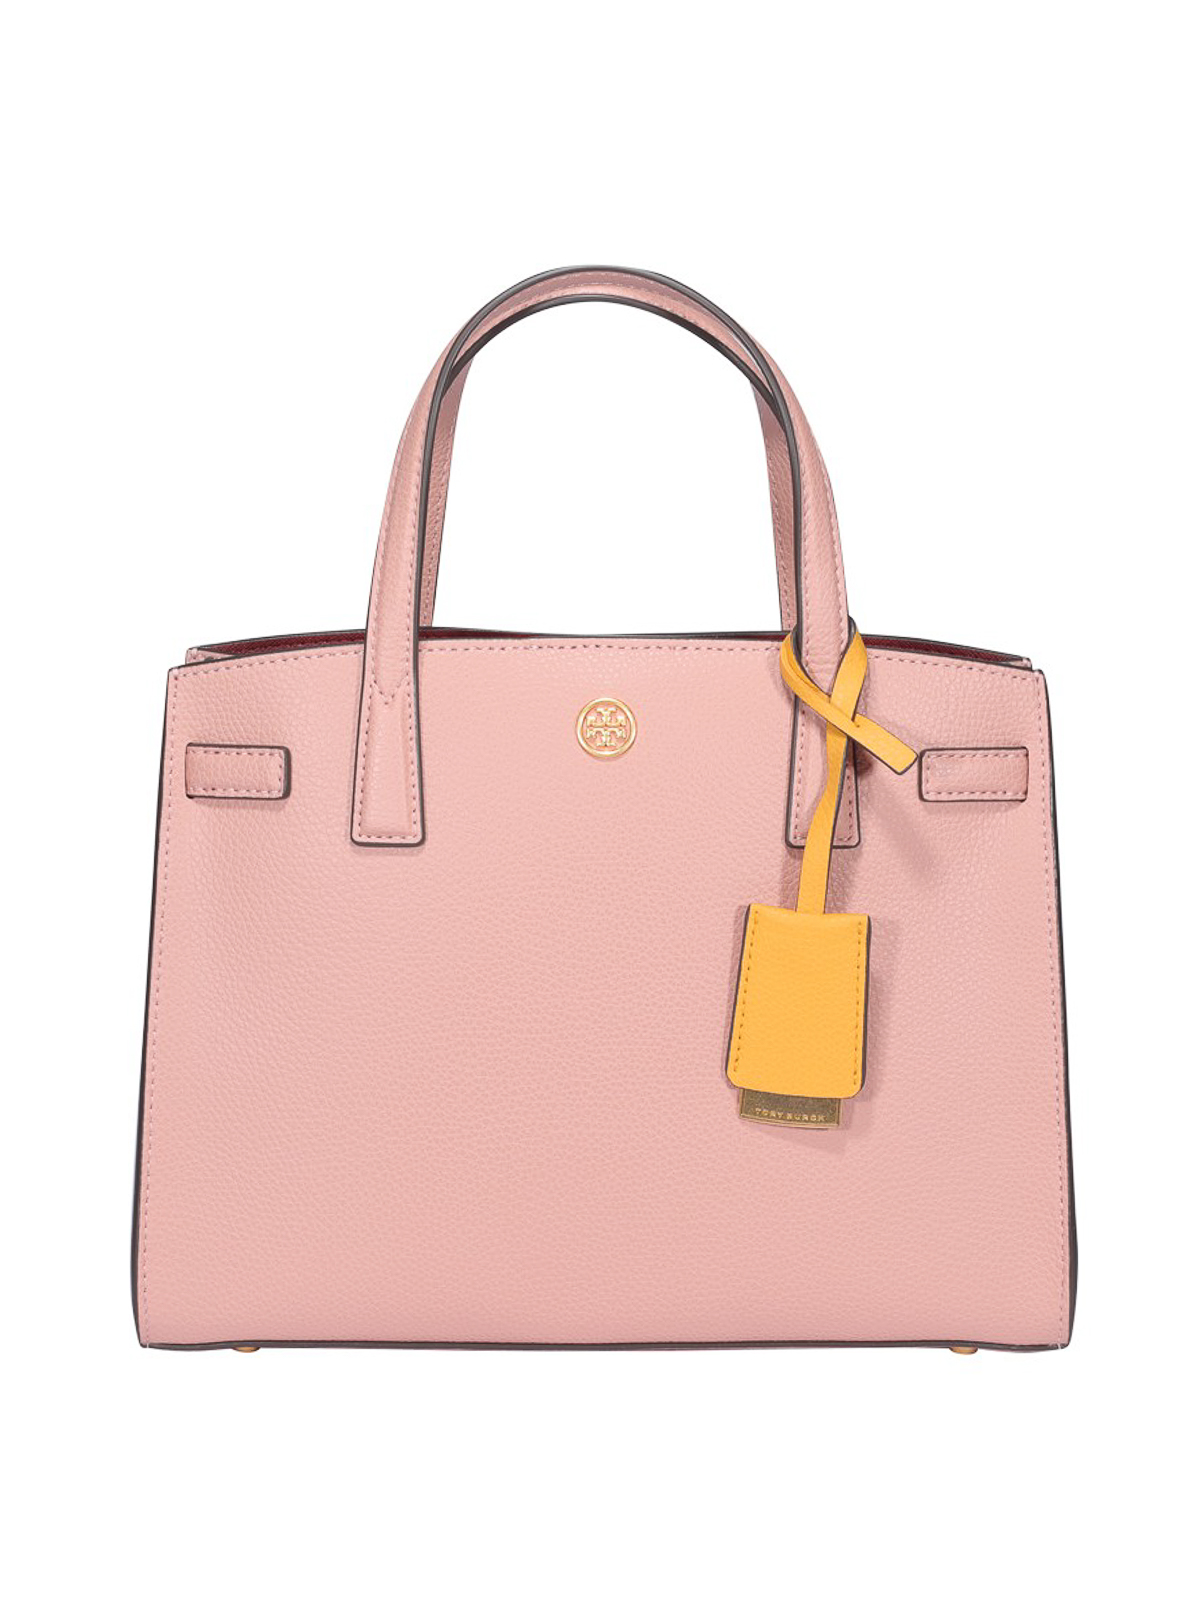 Tory Burch Walker Small Tote In Pink